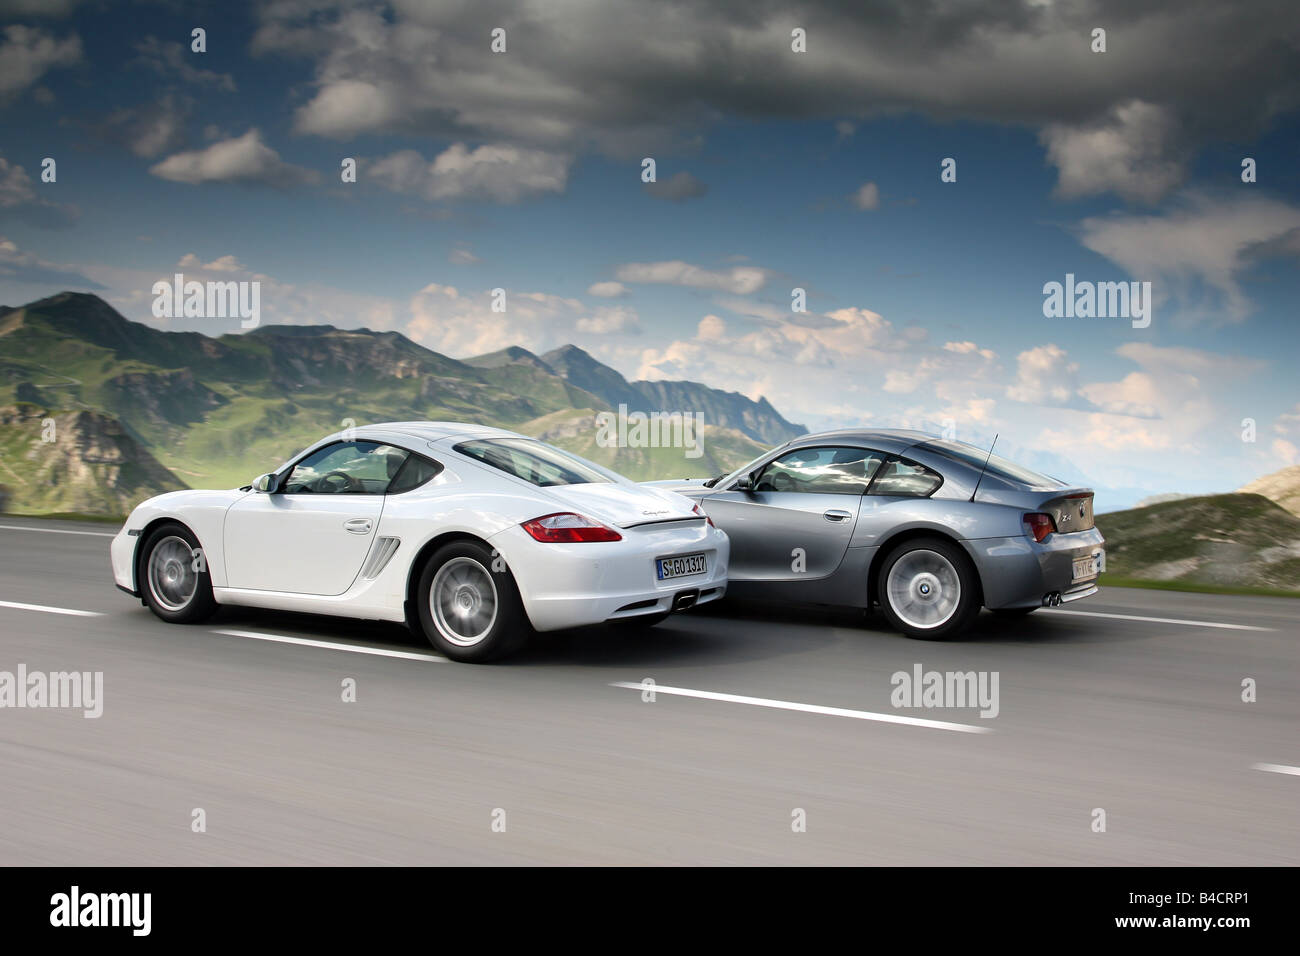 Porsche Cayman Model Year 2006 White Overtakes A Bmw